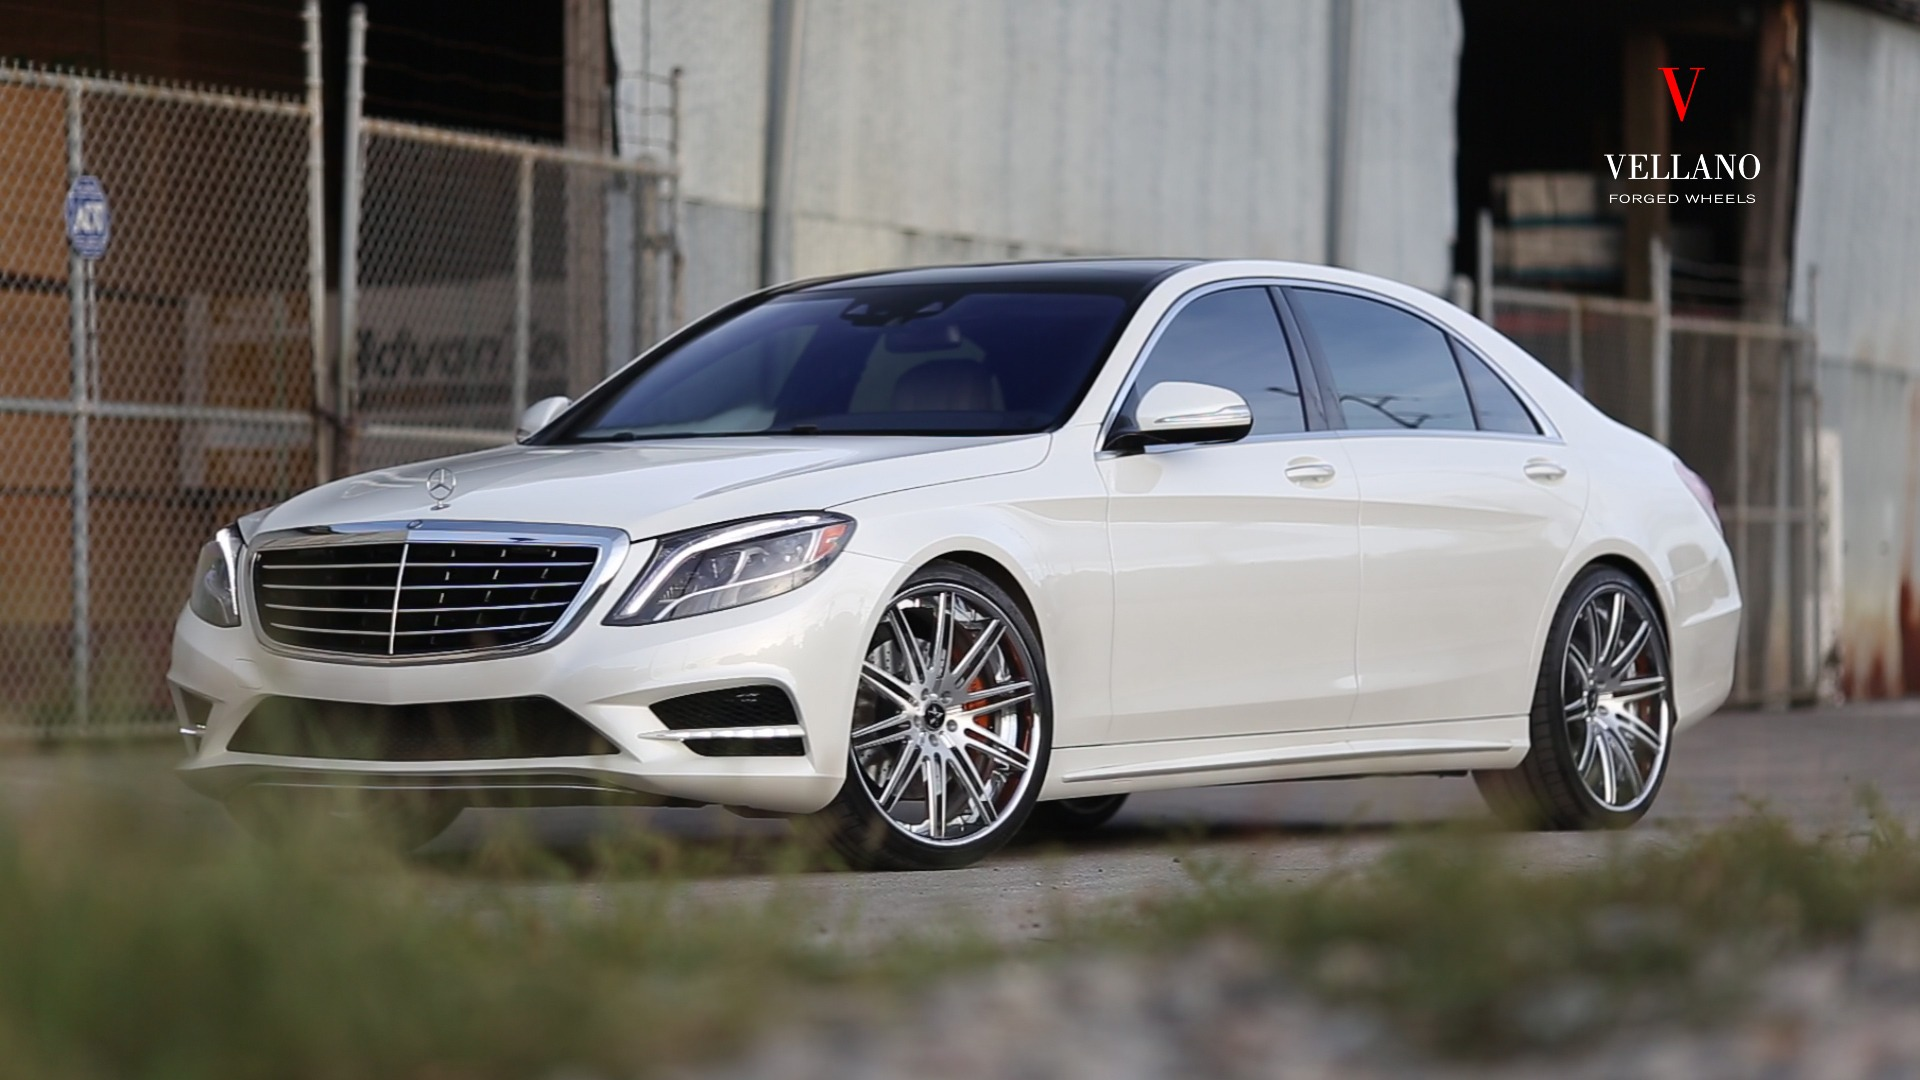 MERCEDES BENZ S550 ON VCP CONCAVE